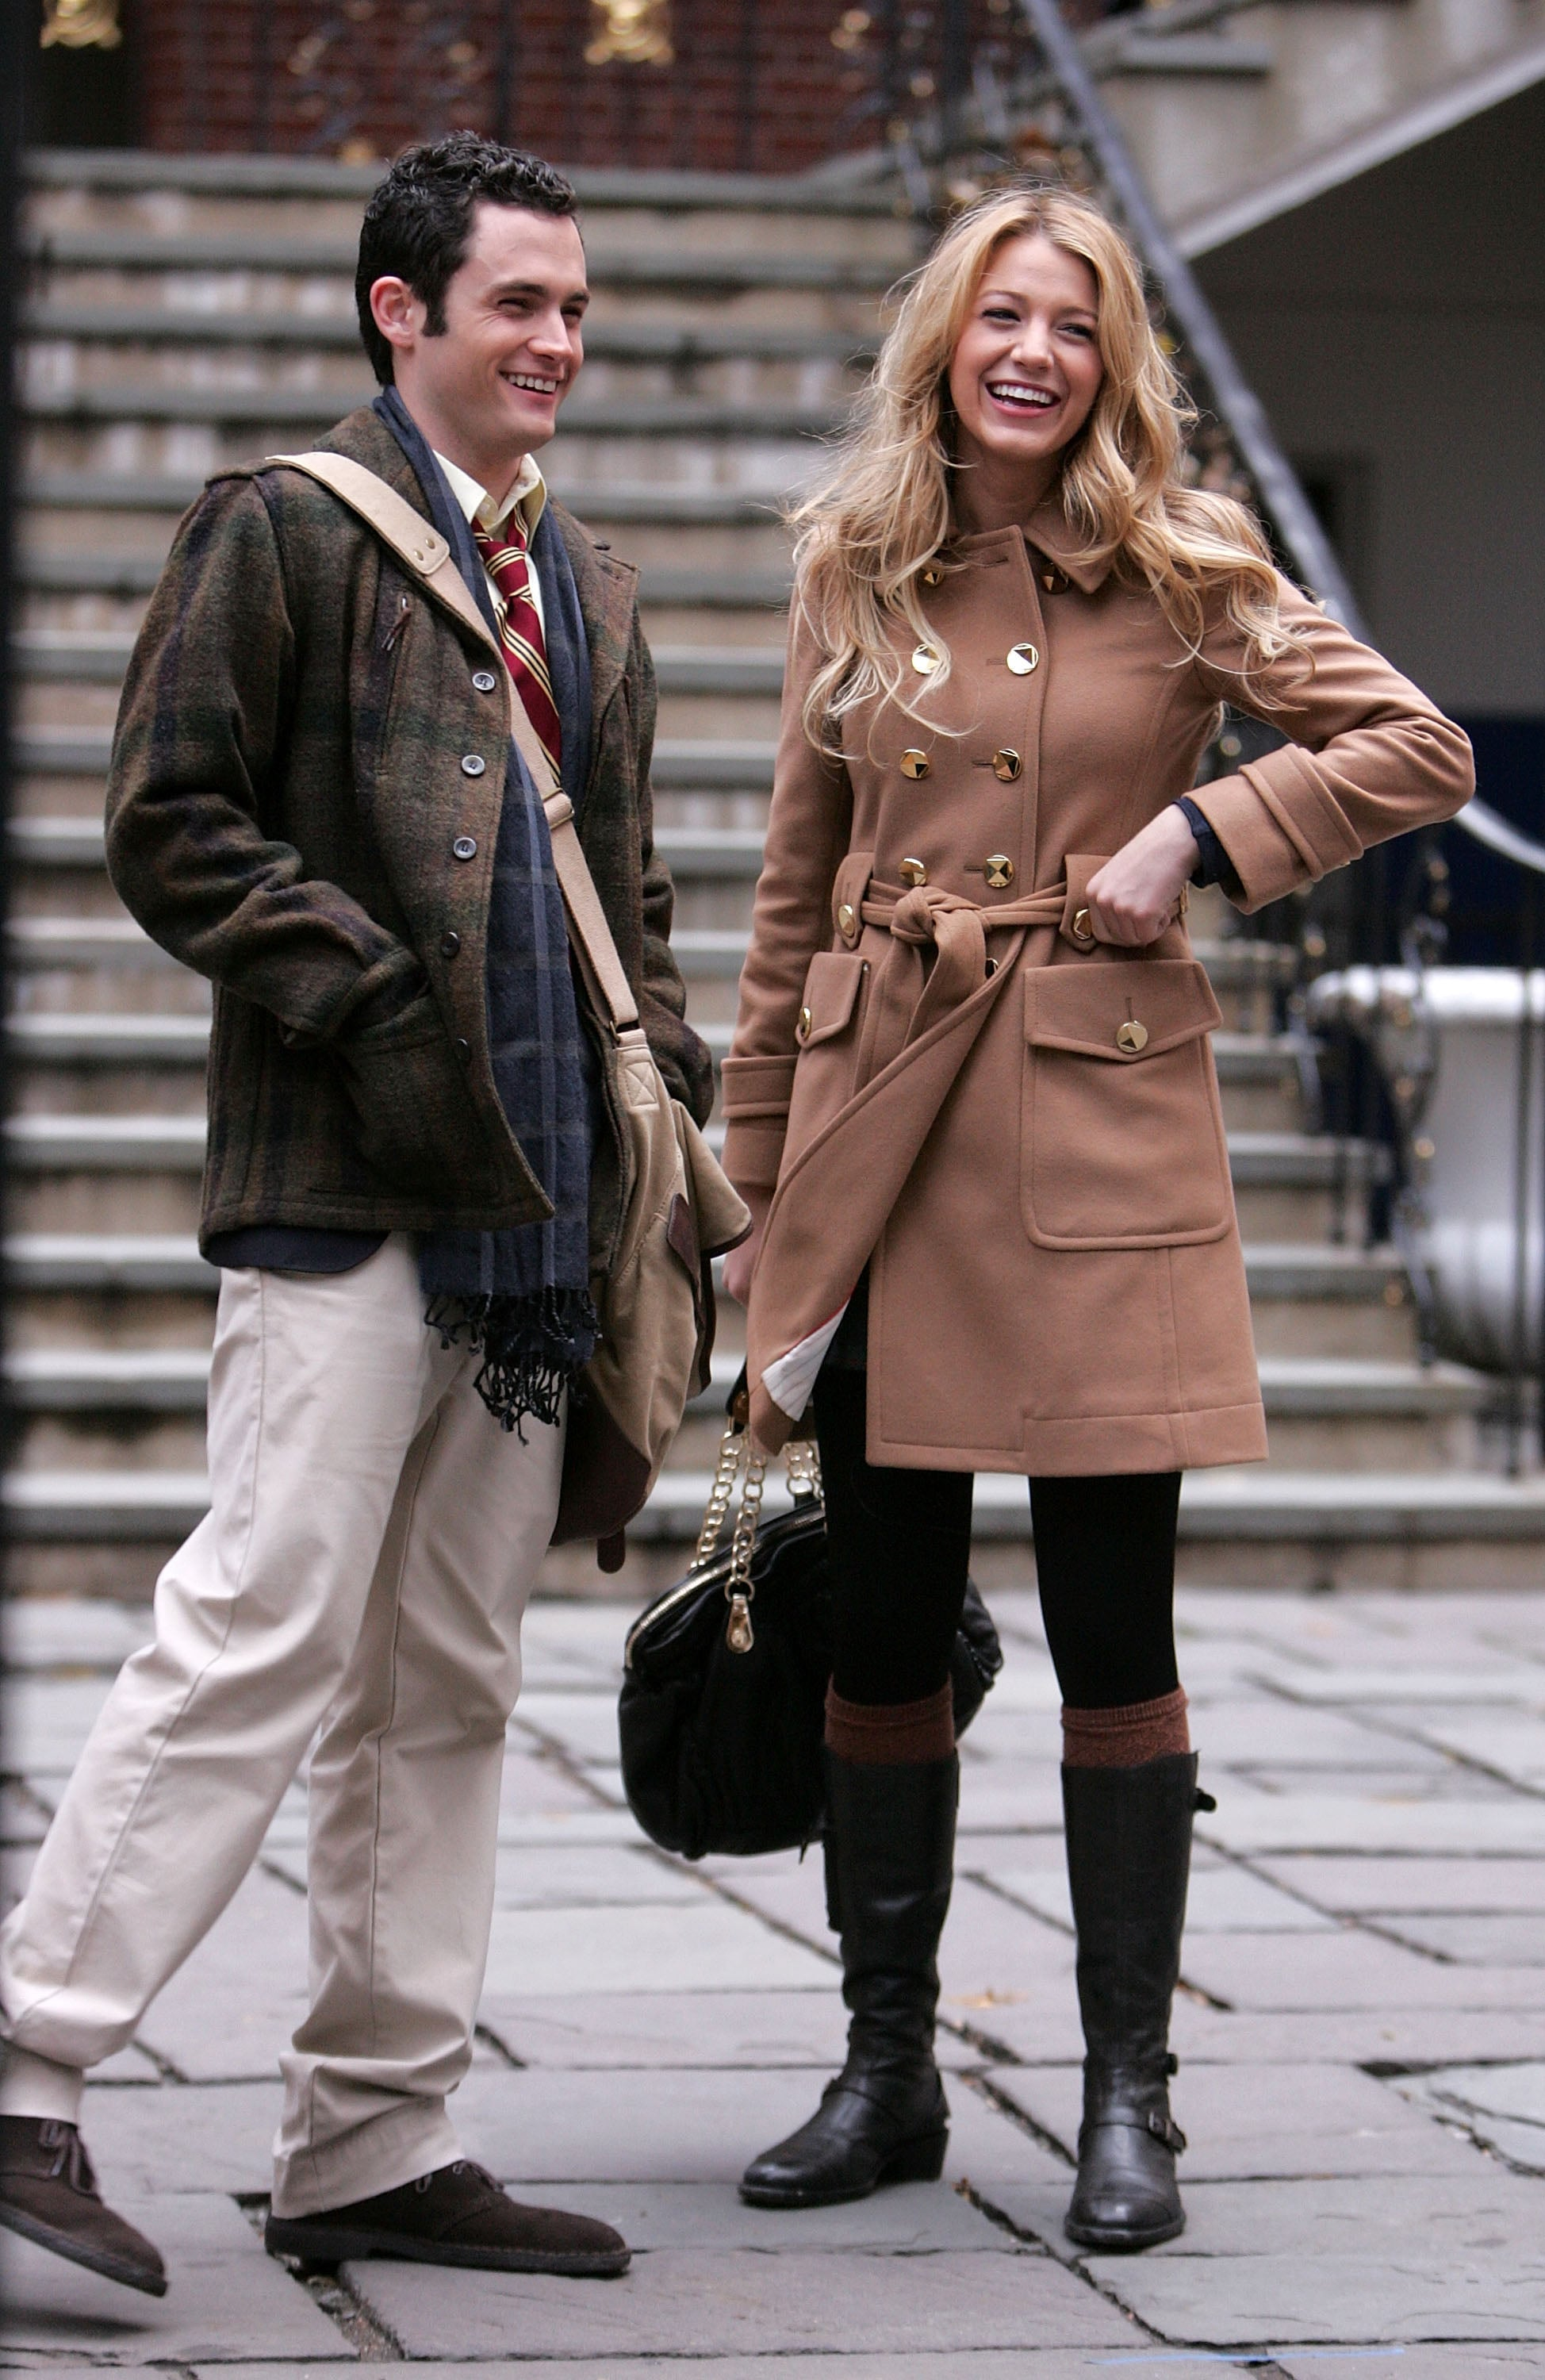 Penn Badgley and Leighton Meester were spotted cracking up on the set in November 2007.